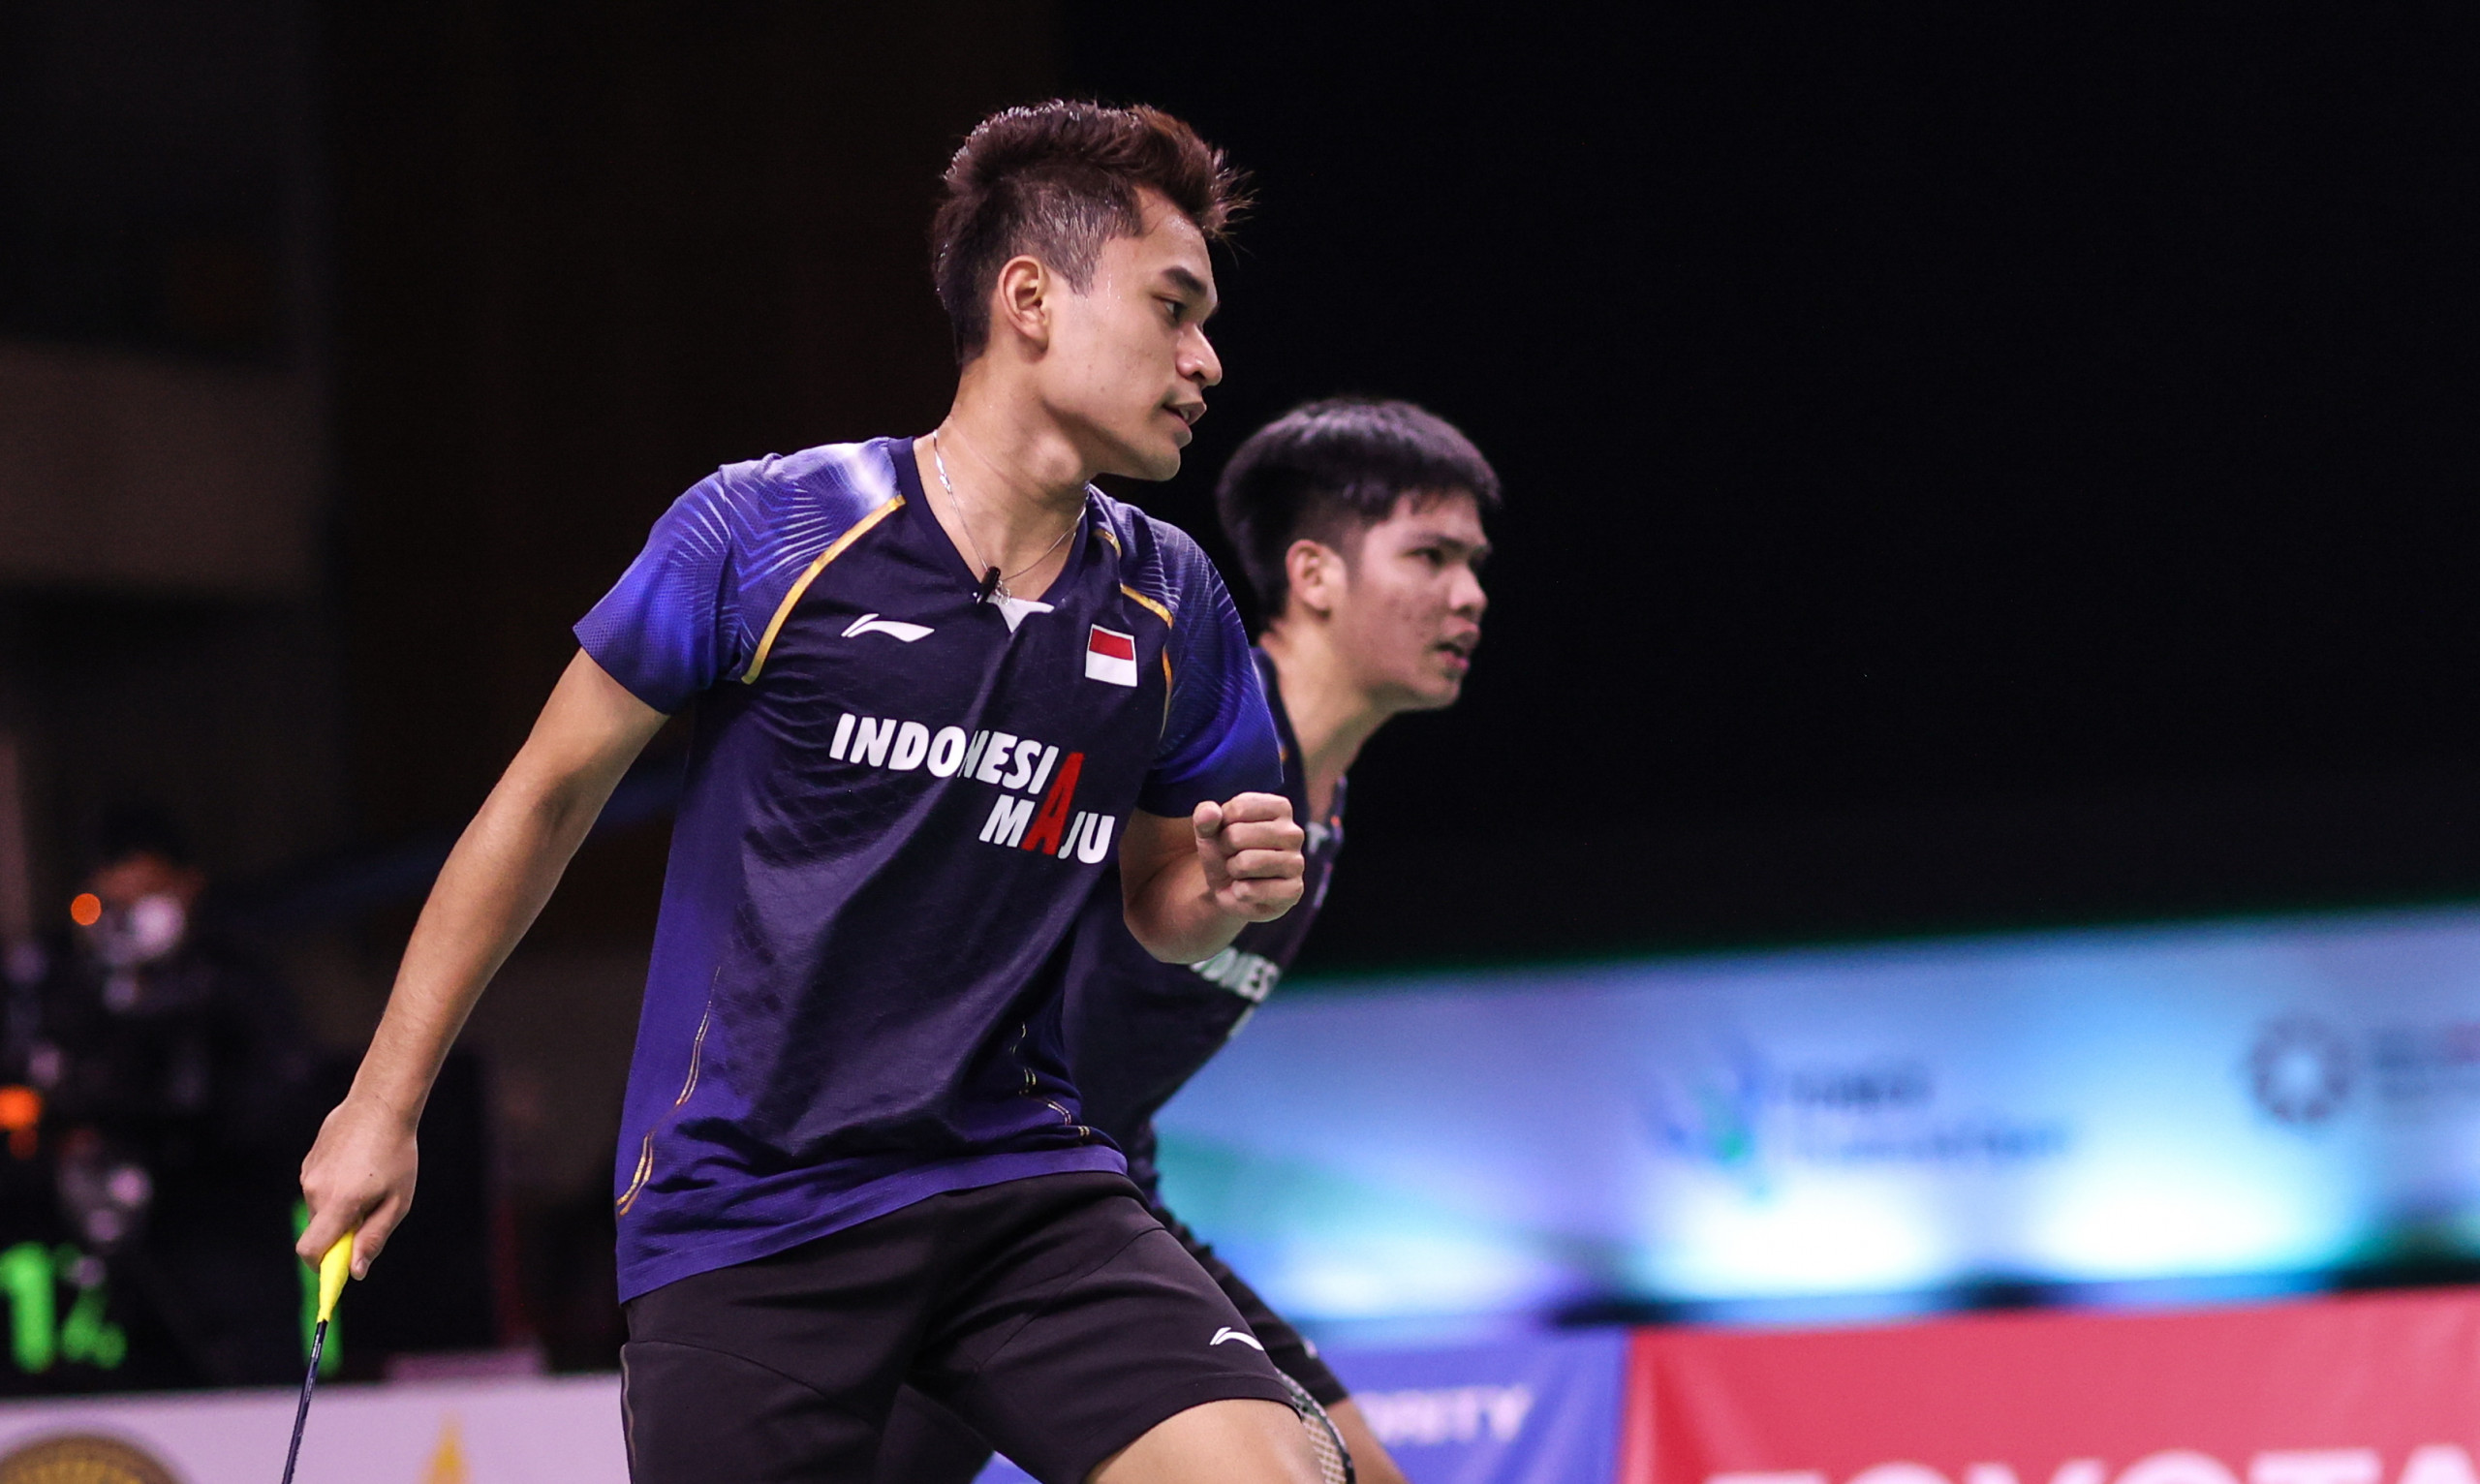 World Rankings: Big Leap for Young Duo